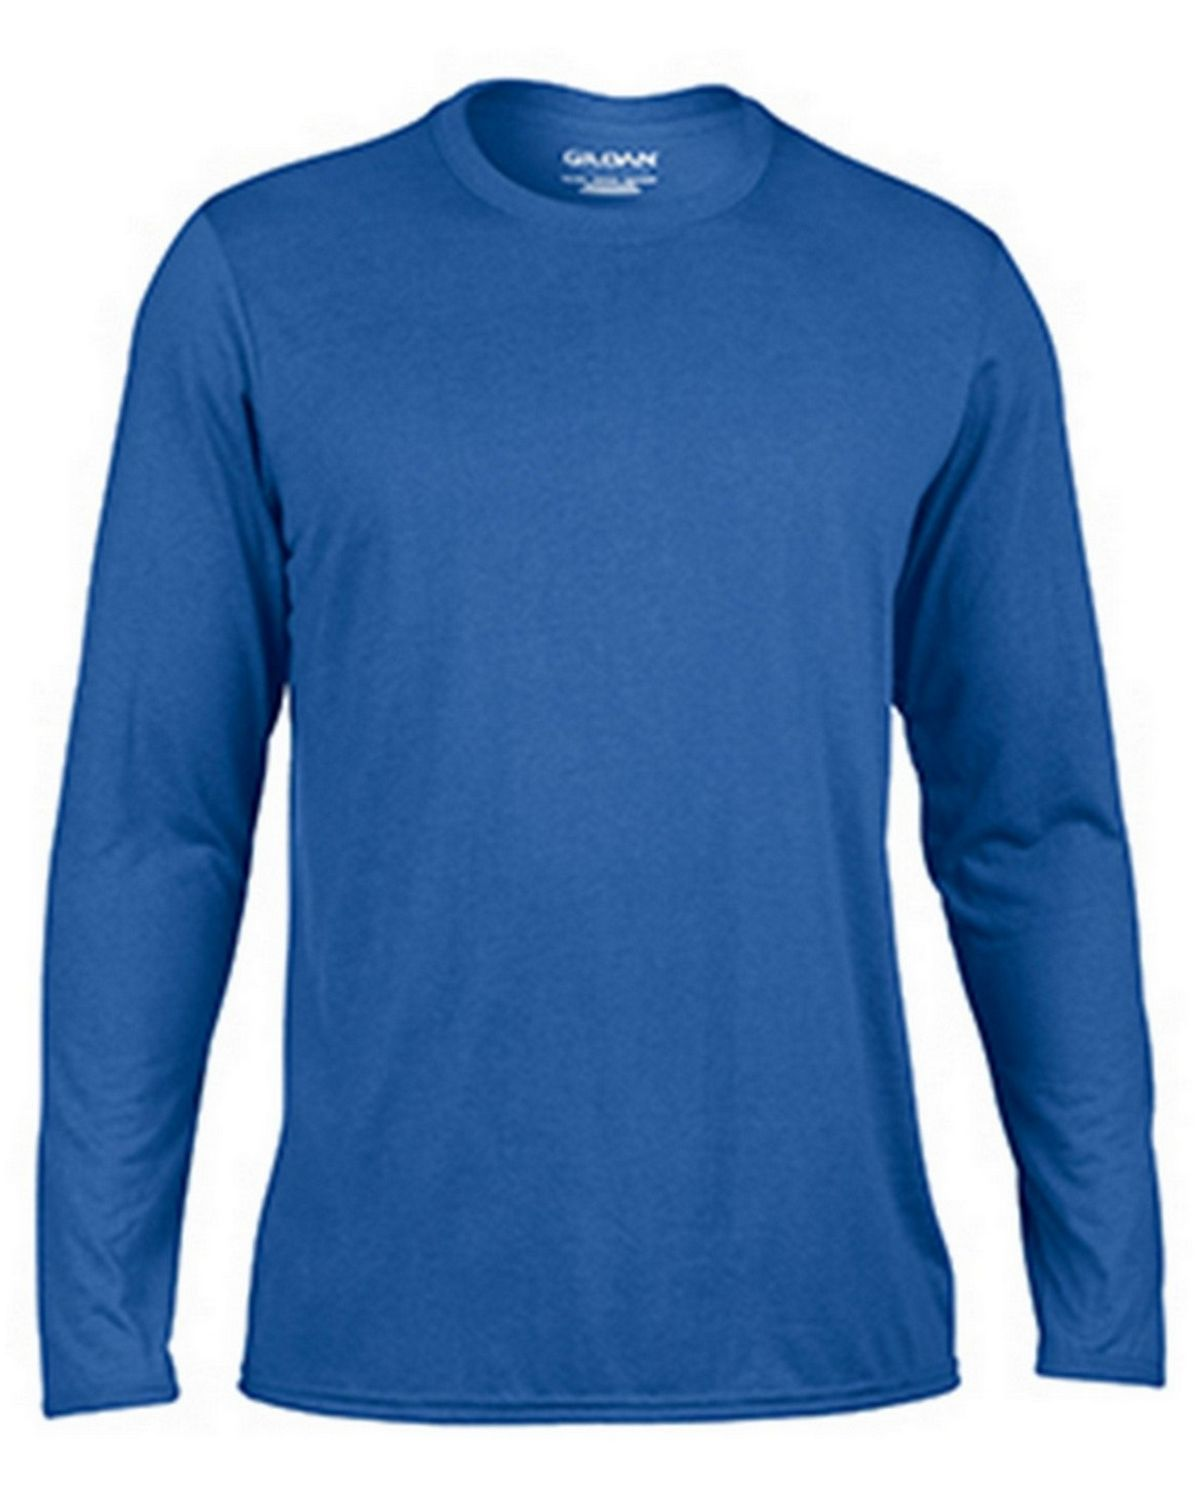 Gildan G42400 Adult Long Sleeve Tee - Royal - 3X G42400